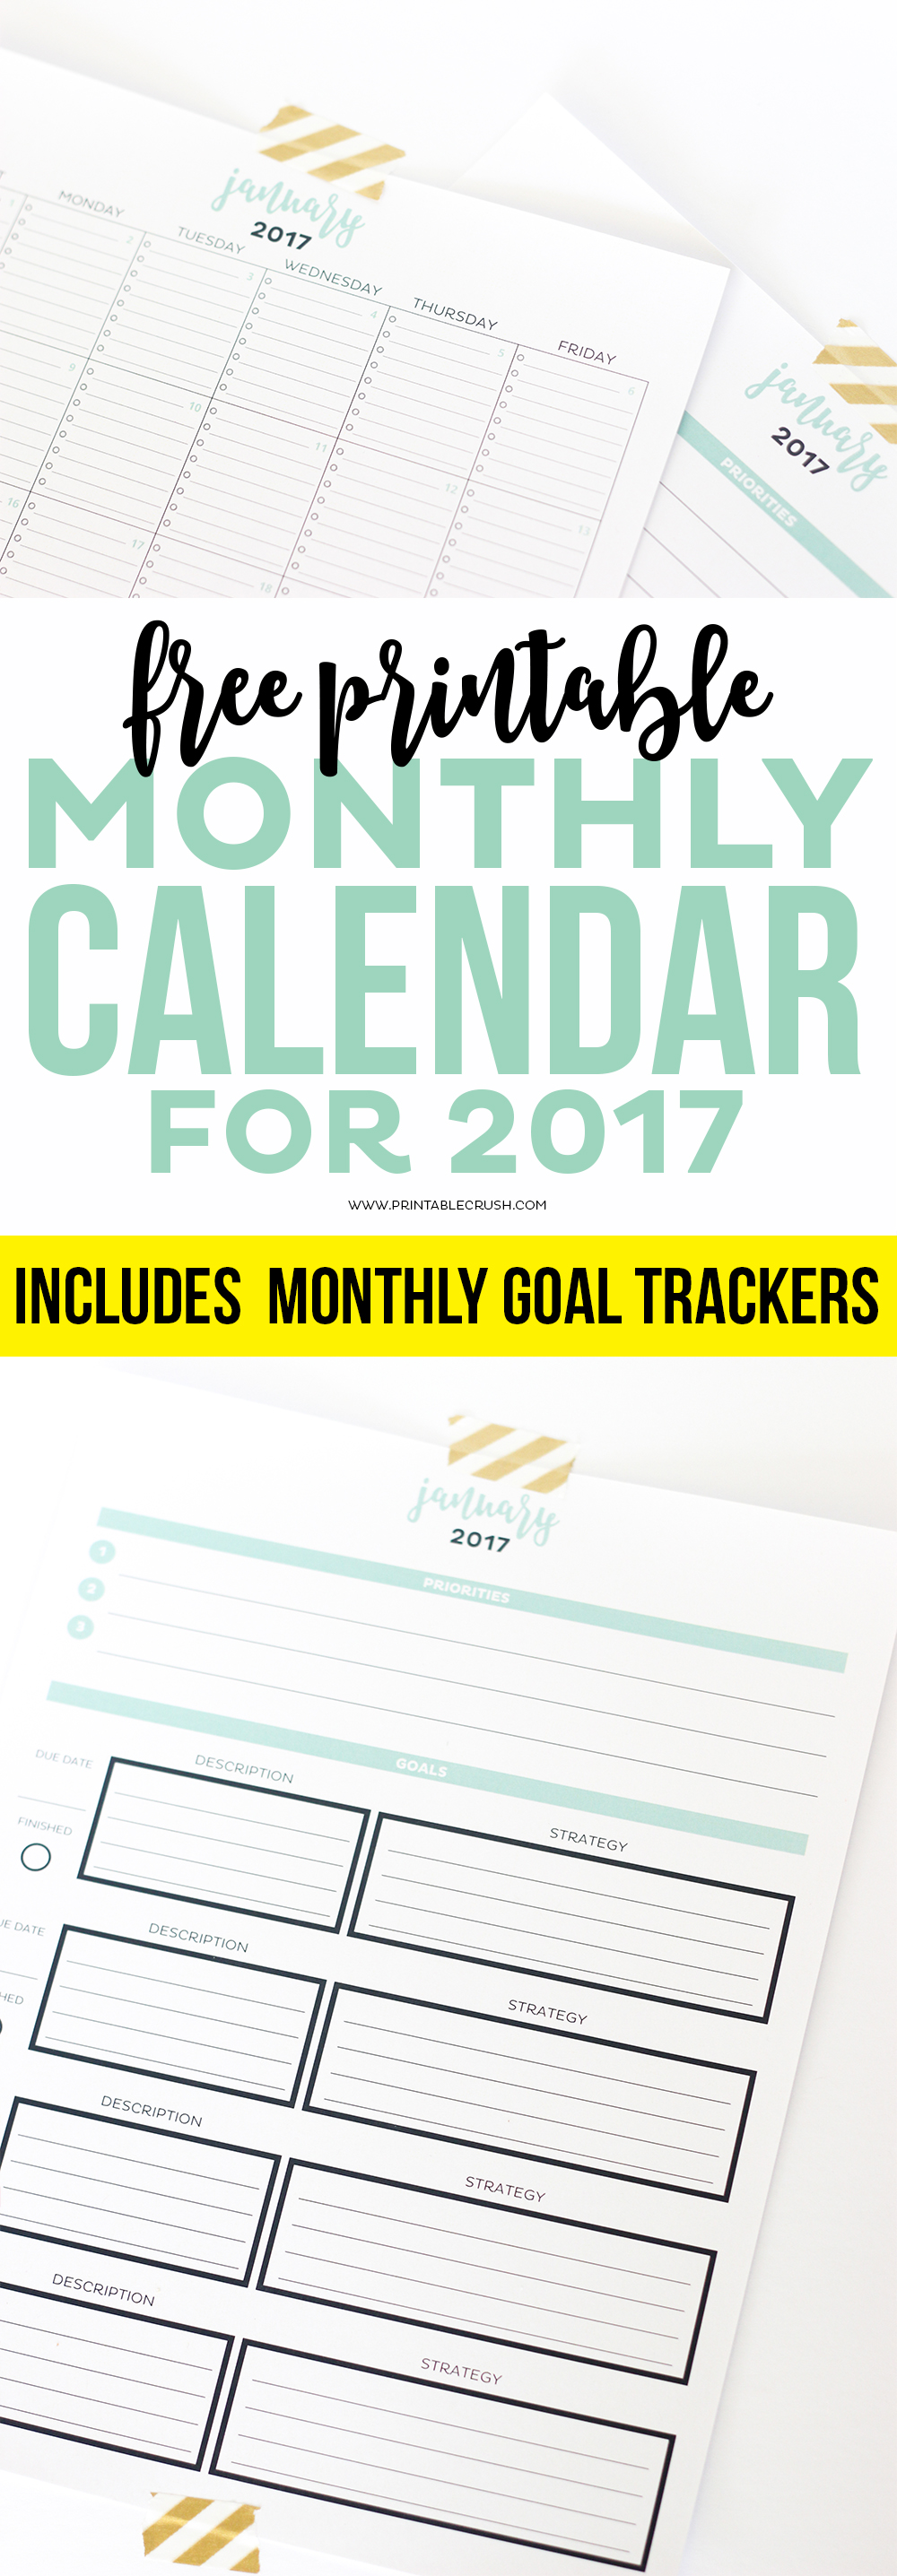 Weekly Calendar With Room For Notes : Simple printable calendar and goal planner